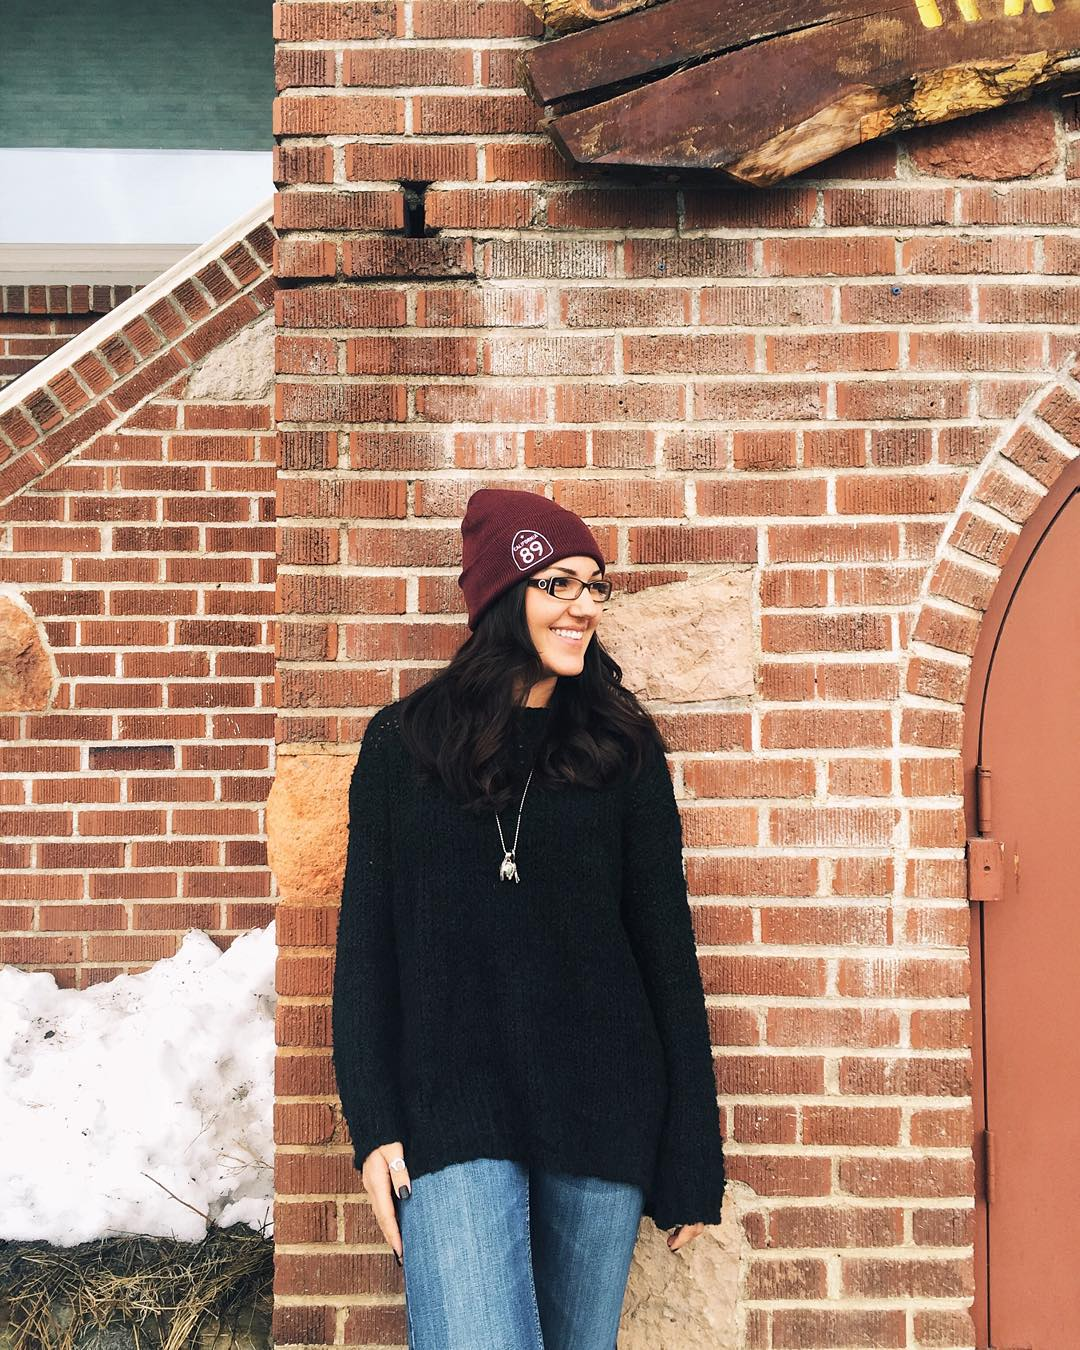 Spotted: the lovely @alanaciera wearing one of our beanies in Downtown Truckee